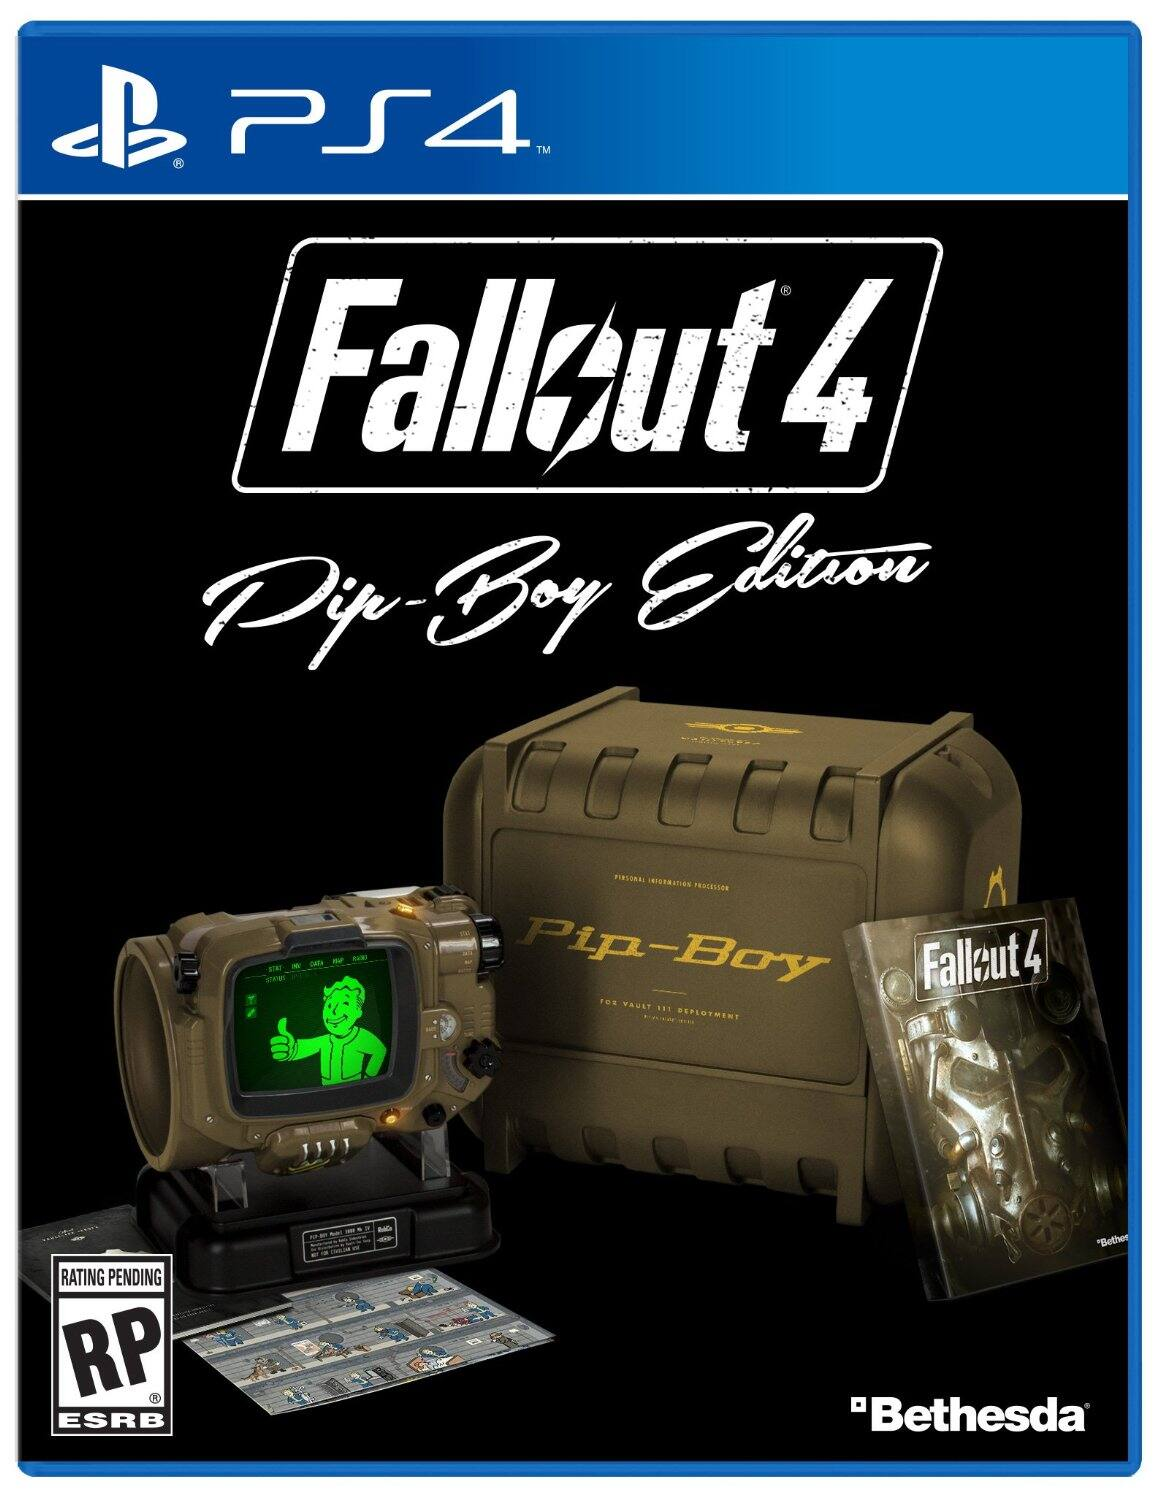 Fallout 4: Pip-Boy Edition Pre-Order (PC, PS4, Xbox One)  $120 + Free Shipping